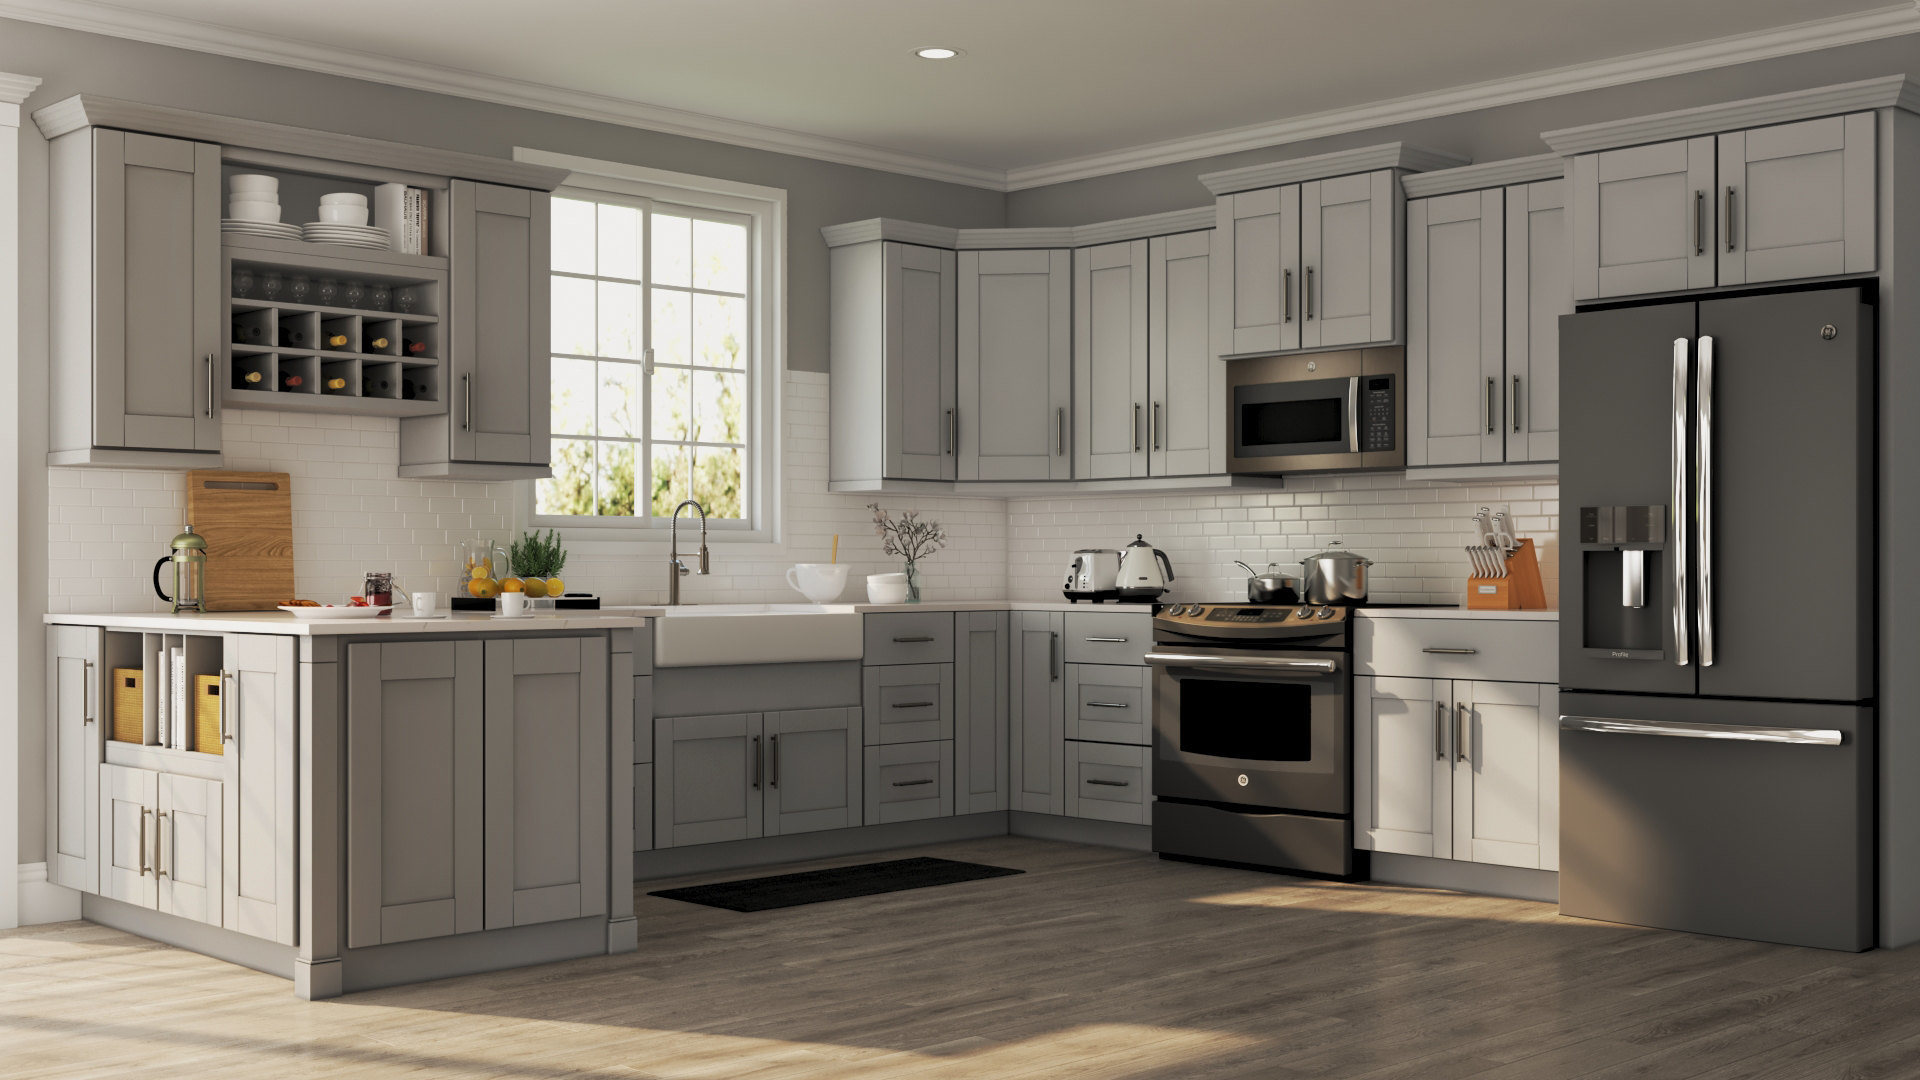 Shaker Wall Cabinets in Dove Gray – Kitchen – The Home Depot